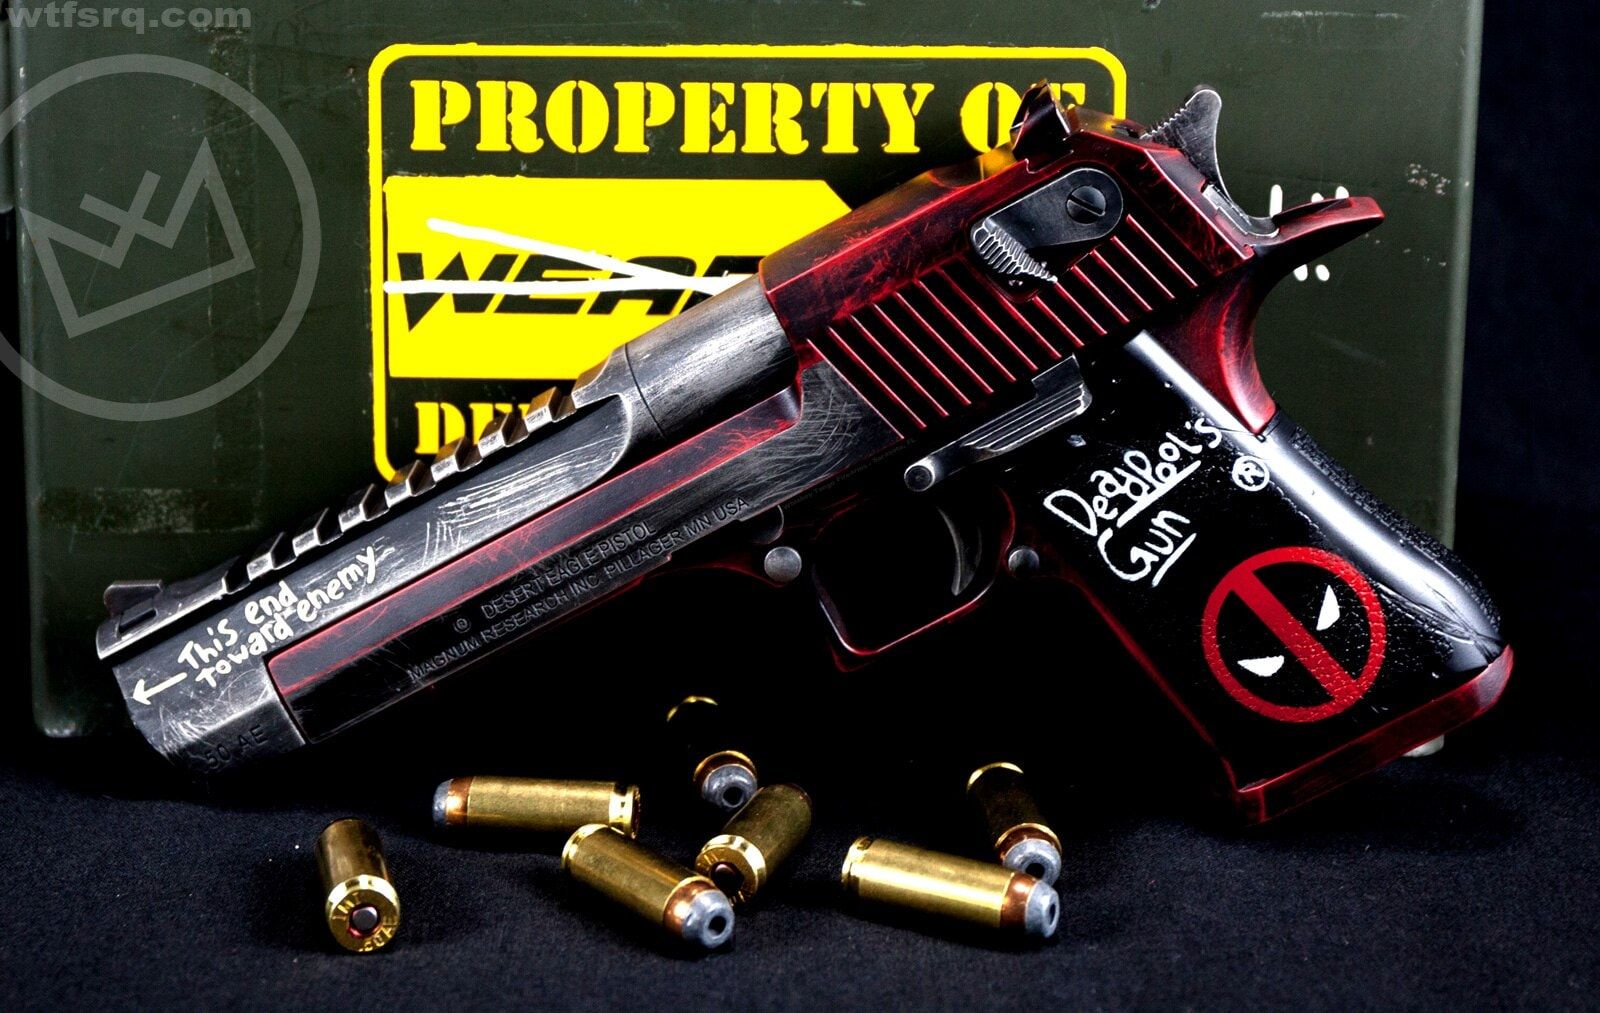 Sarasota, Florida's WTF has made well-received Deadpool-themed Colts and ARs in the past, but this is their first run of Desert Eagles (Photos: WTF)